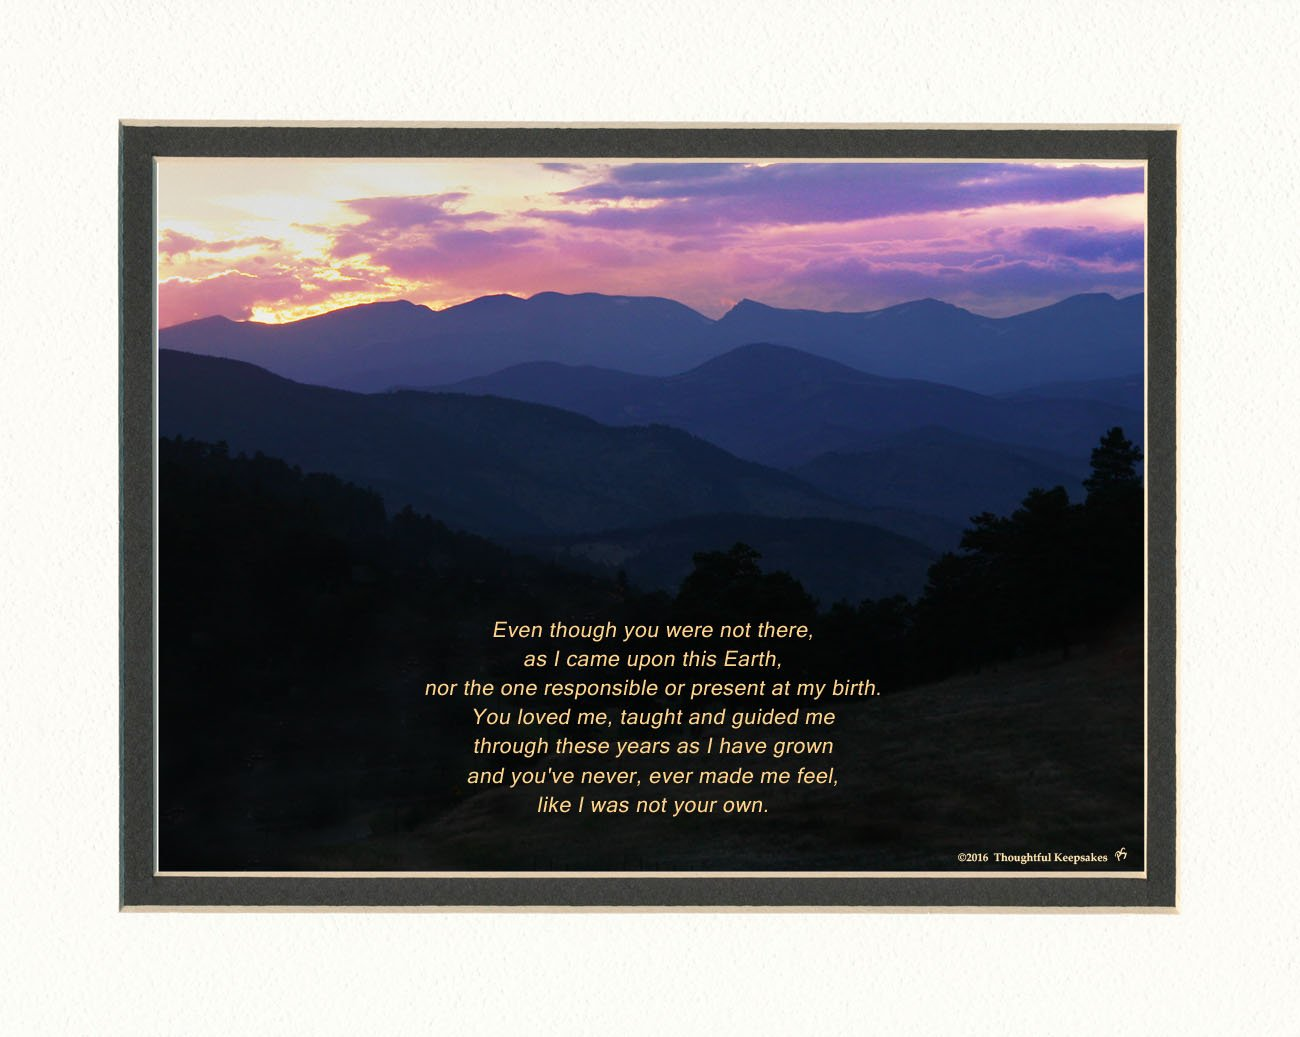 Gift for Stepmom or Stepdad with ''Even though you were not there, as I came upon this earth, you've never, ever made me feel, like I was not your own.'' Poem, Mts Sunset, Stepfather or Stepmother Gift